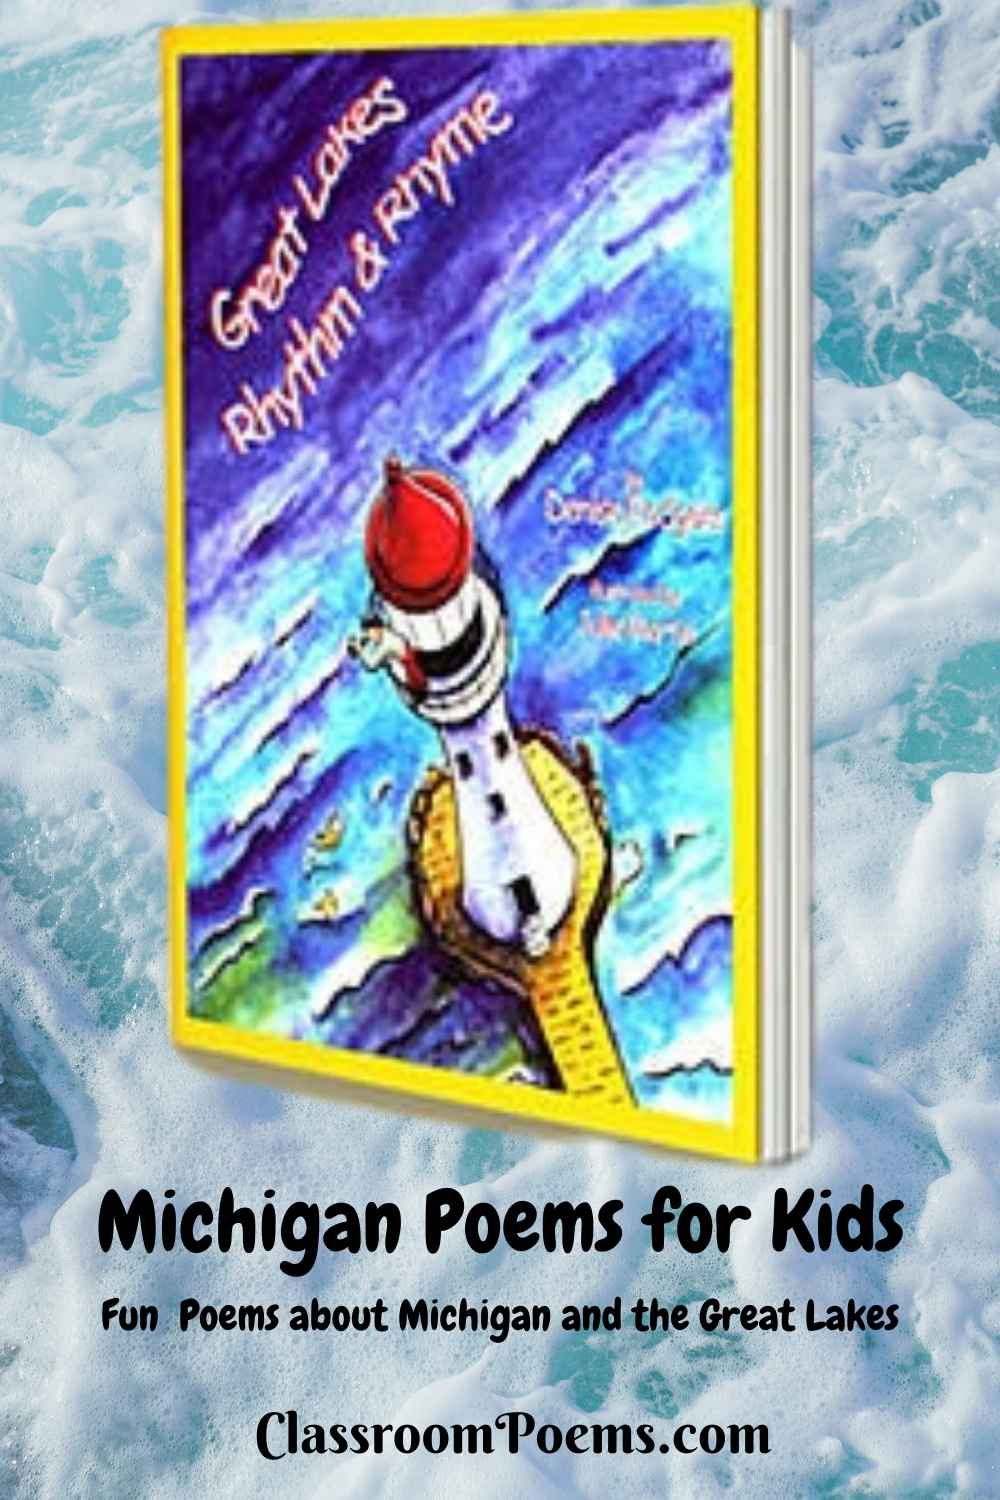 Great Lakes Rhythm and Rhyme by Denise Rodgers on ClassroomPoems.com.